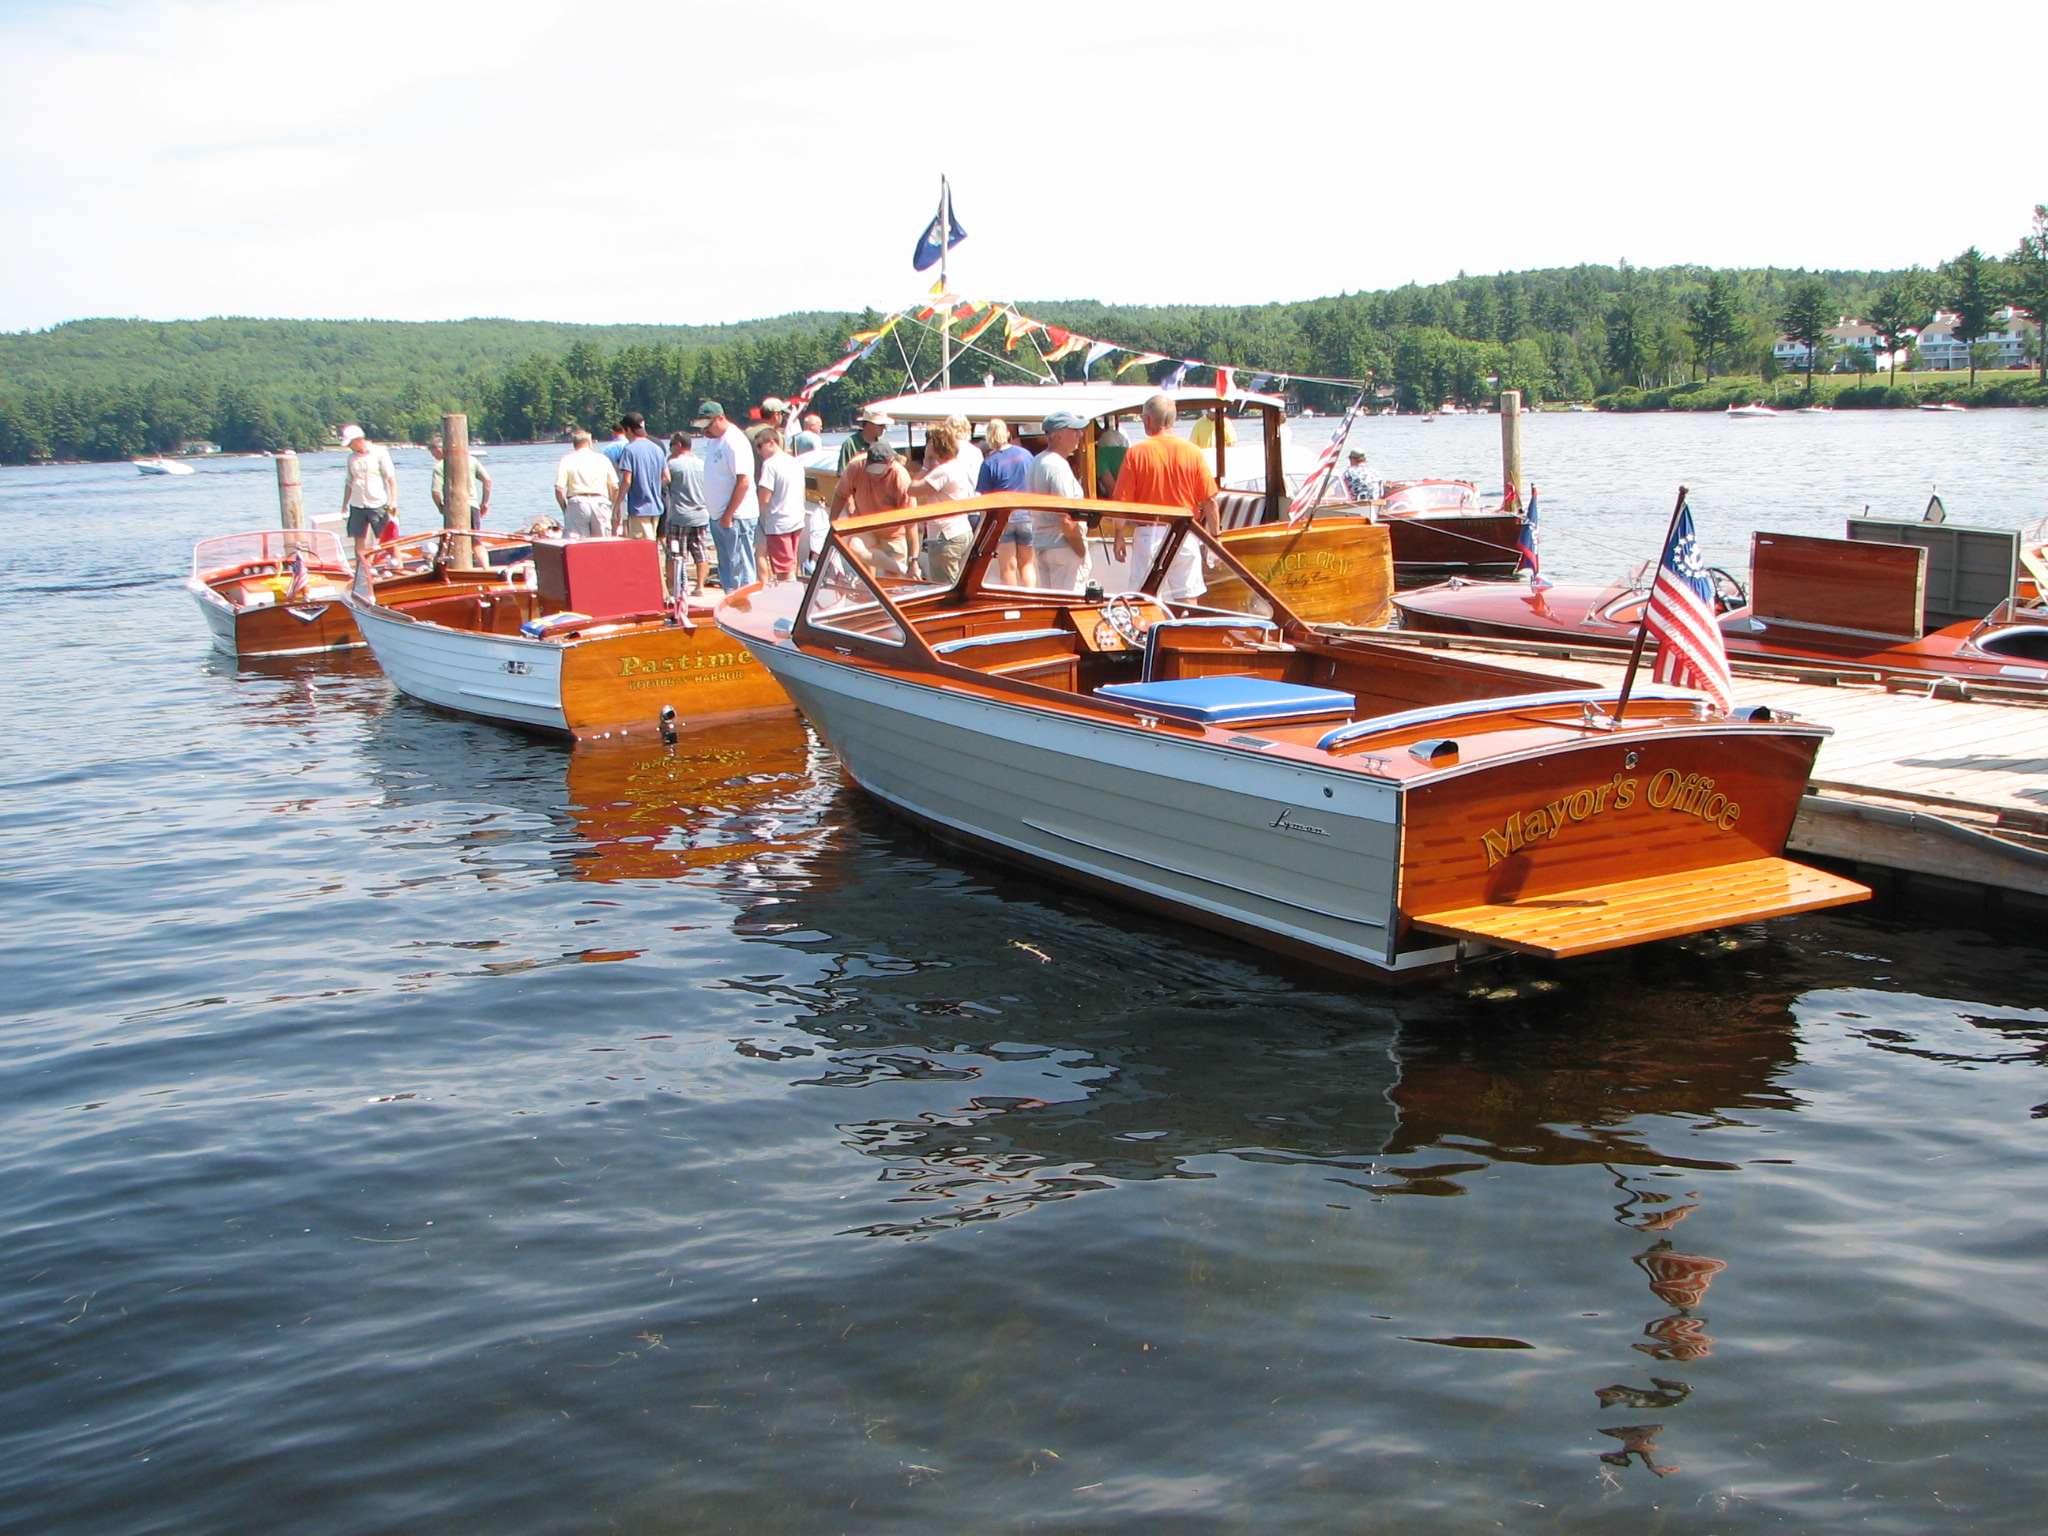 Rd Annual Antique Boat Show In Naples Maine ACBS Antique - Naples antique car show 2018